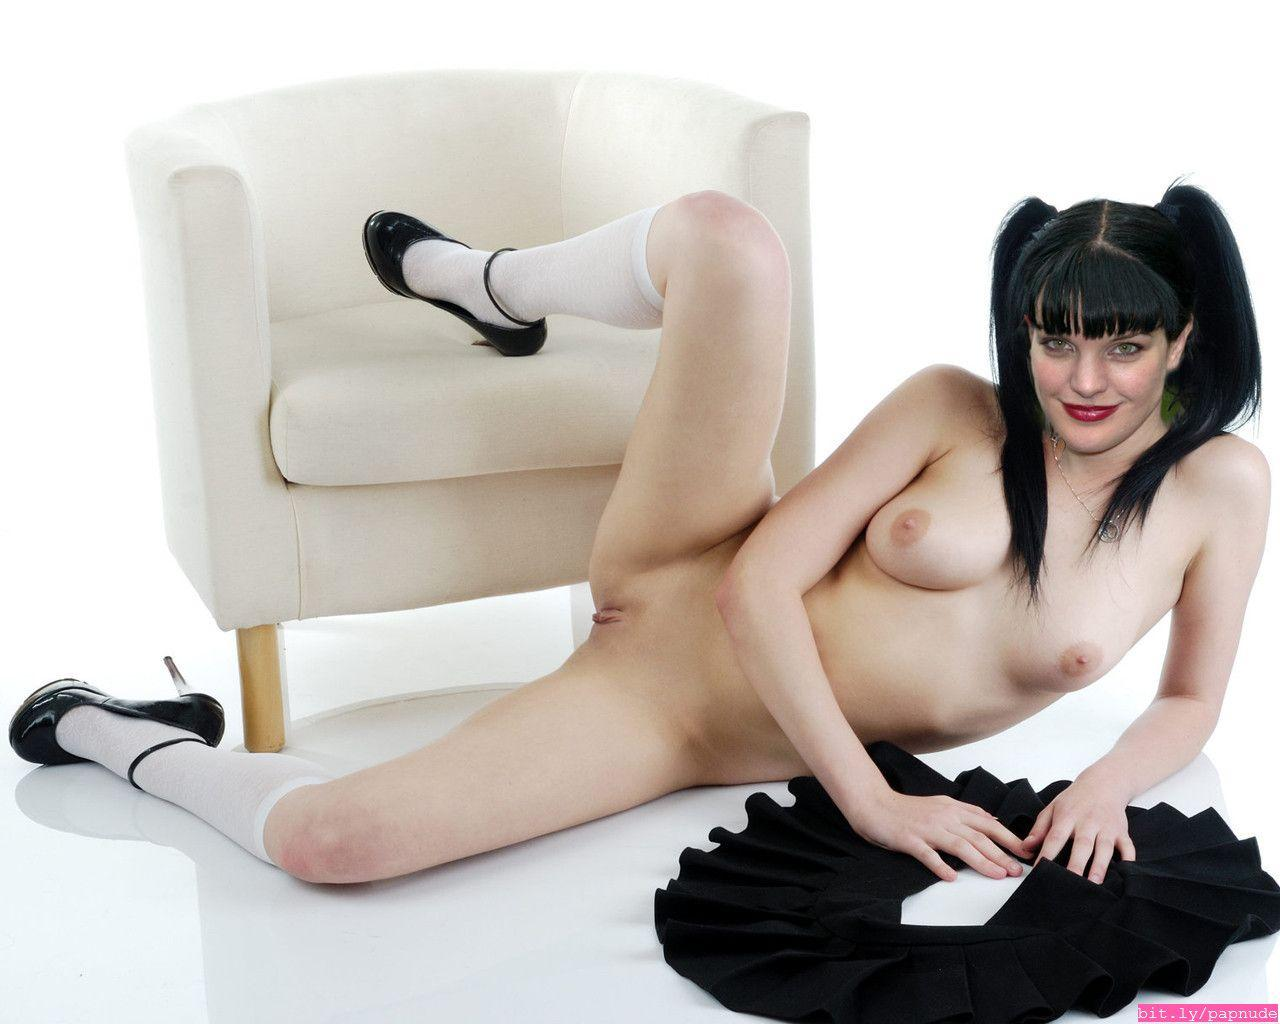 For abby naked ncis remarkable